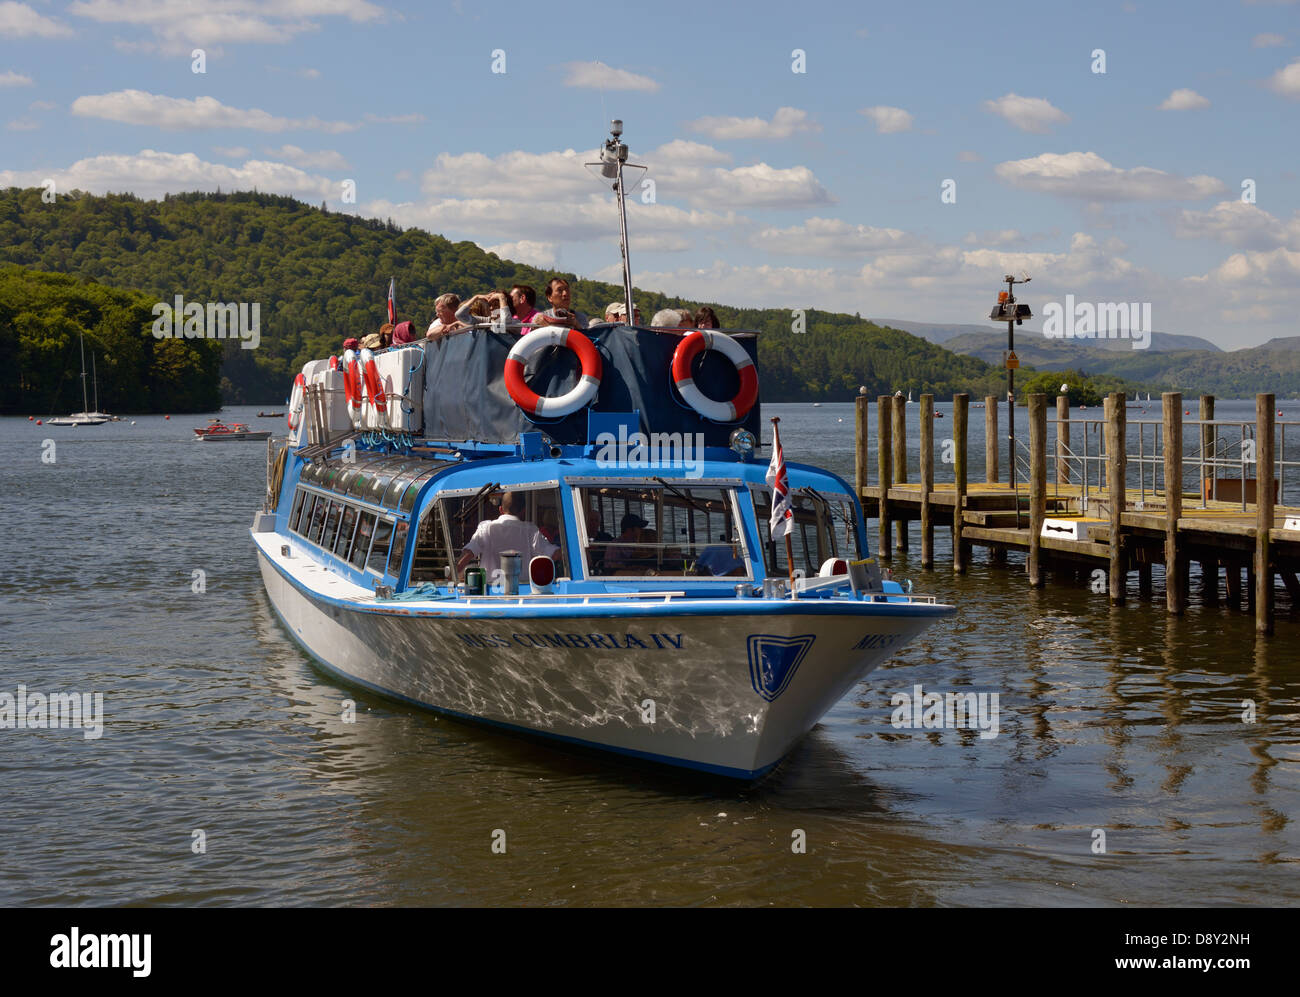 'Miss Cumbria IV'. Bowness-on Windermere, Lake District National Park, Cumbria, England, United Kingdom, - Stock Image